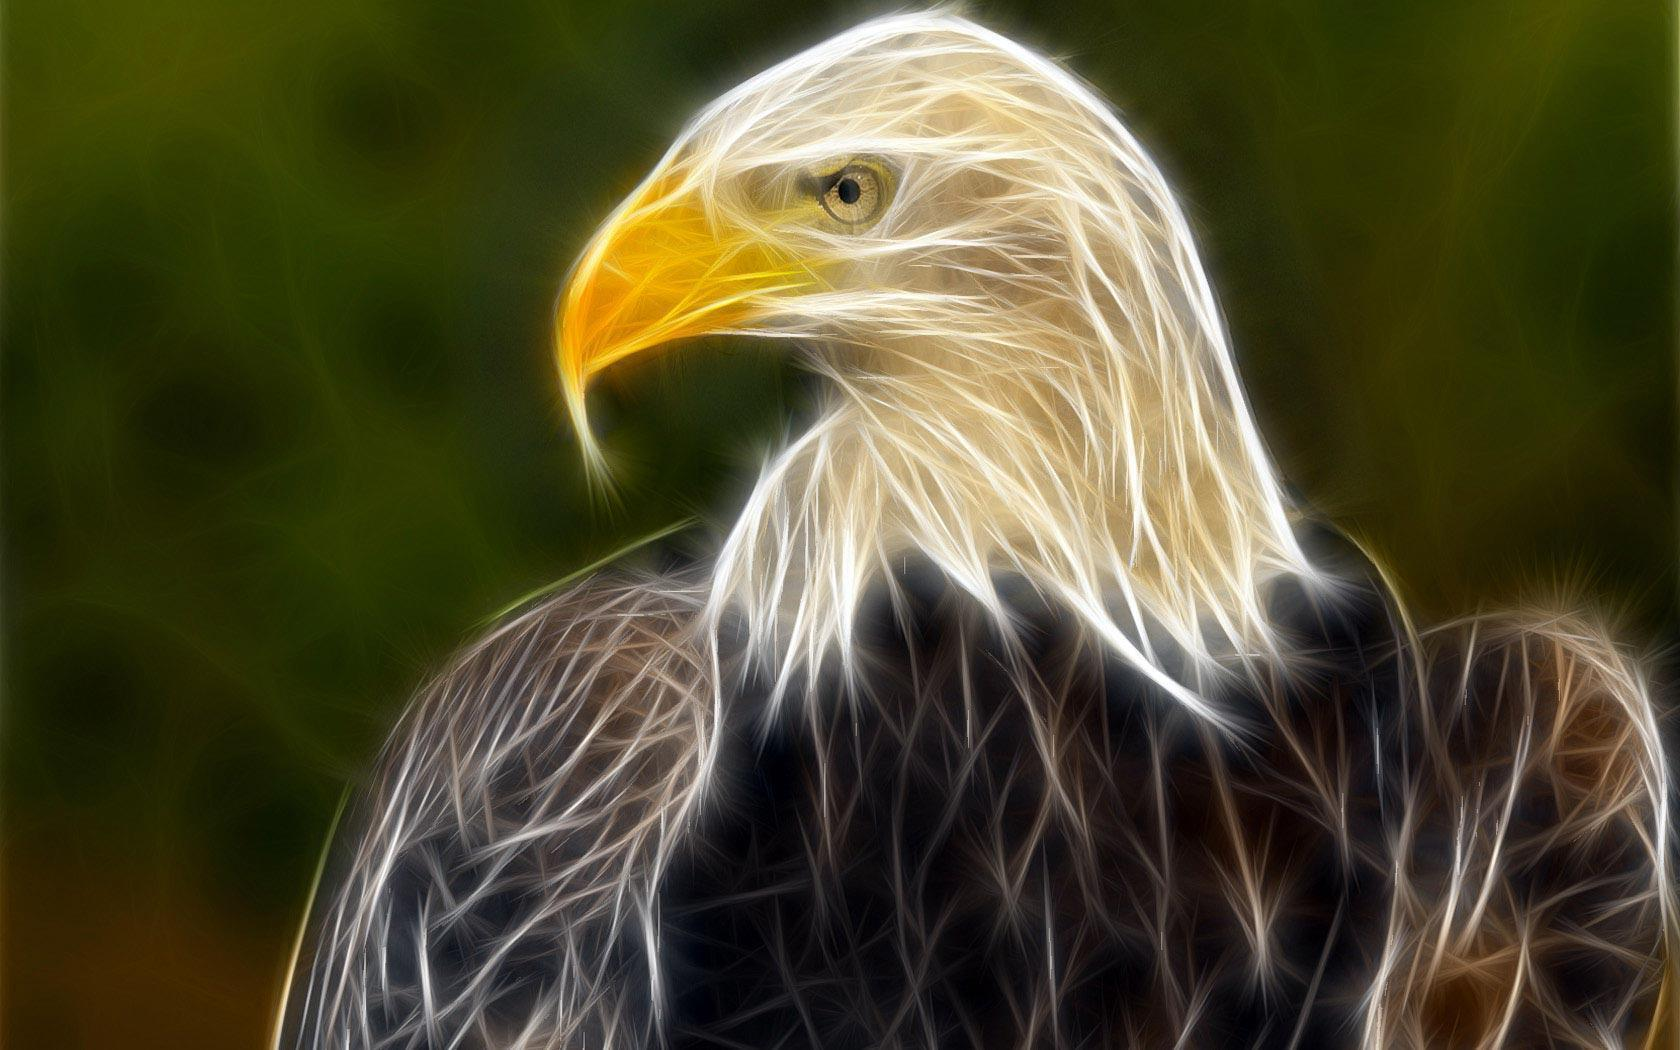 Eagle wallpapers